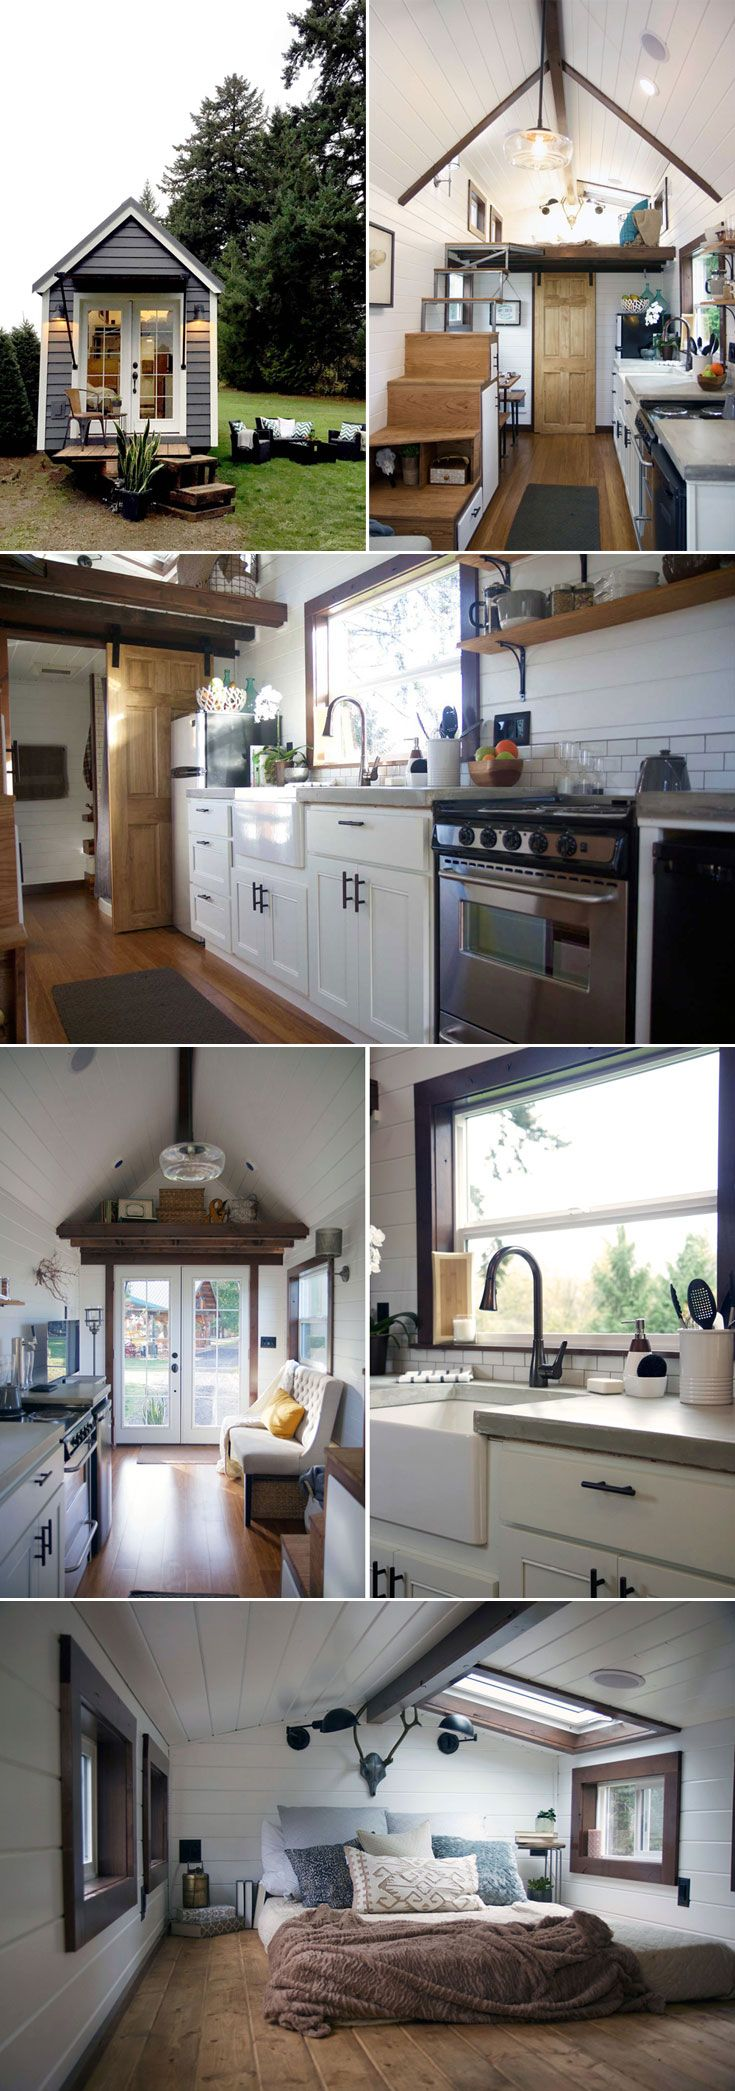 apartments hgtv kitchen remodel 25 Best Ideas about Apartments on Pinterest Apartments decorating College apartments and Apartment living